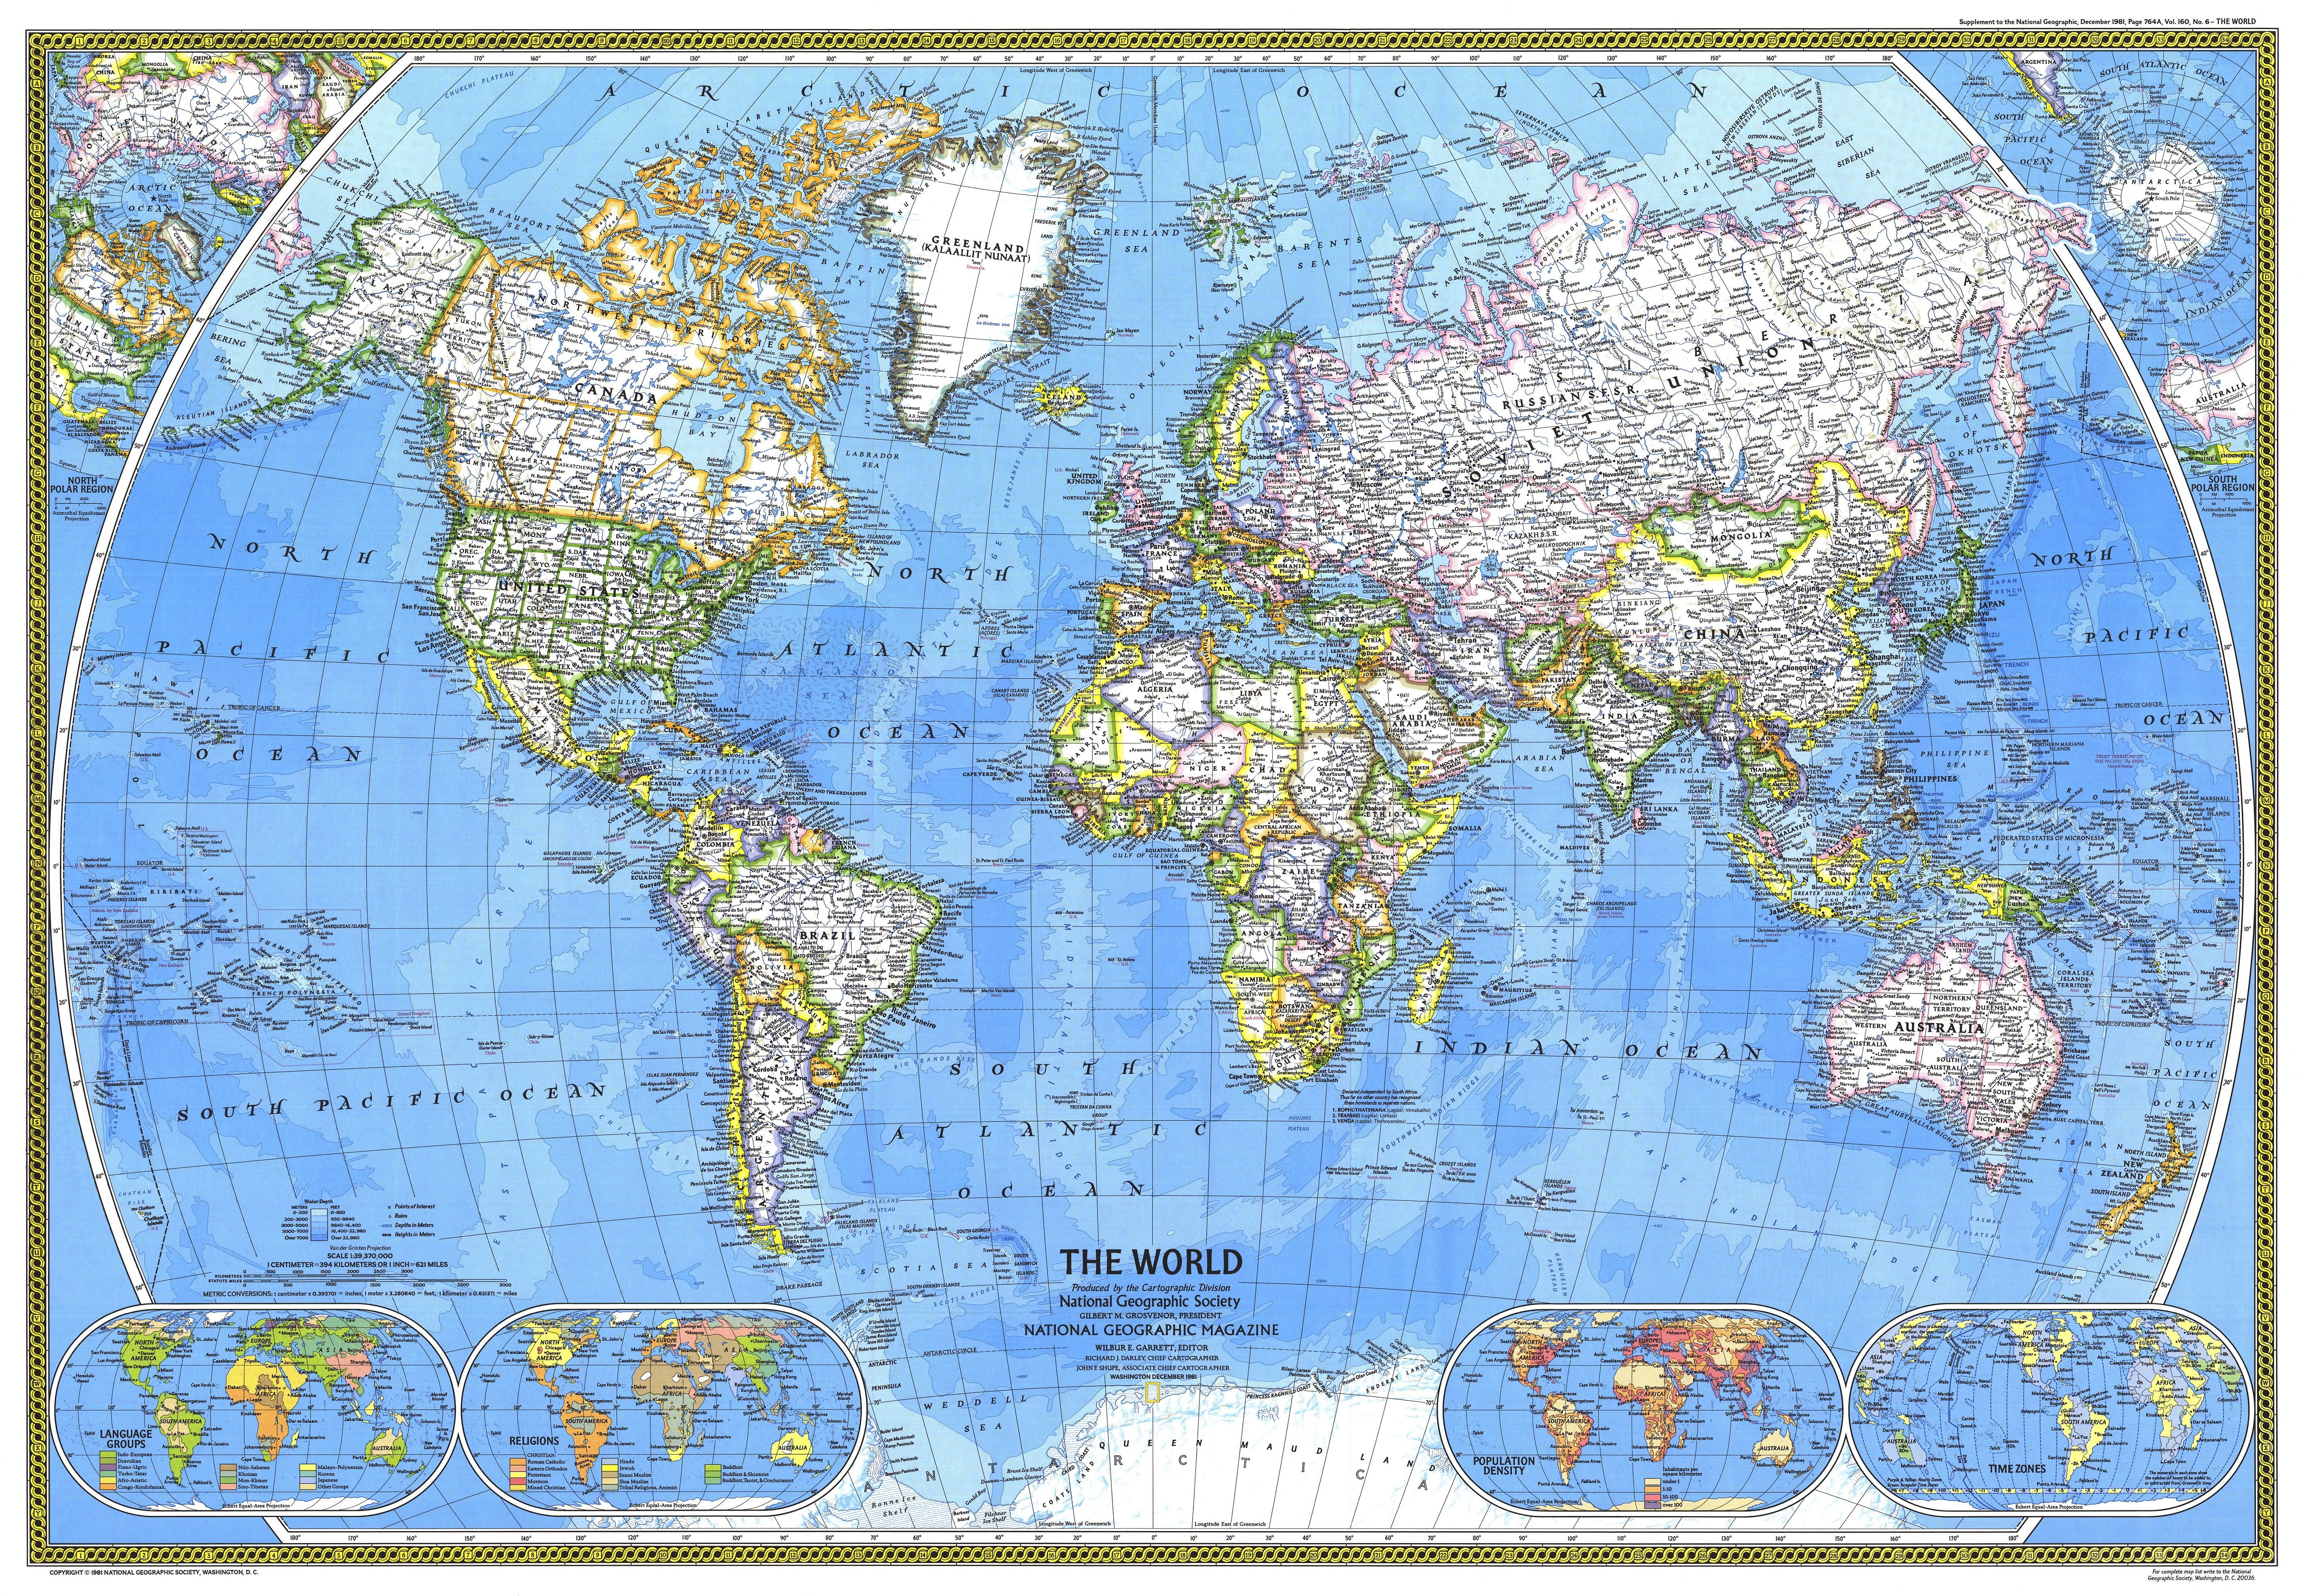 Frameable World Map.Ngs 1981 World Map